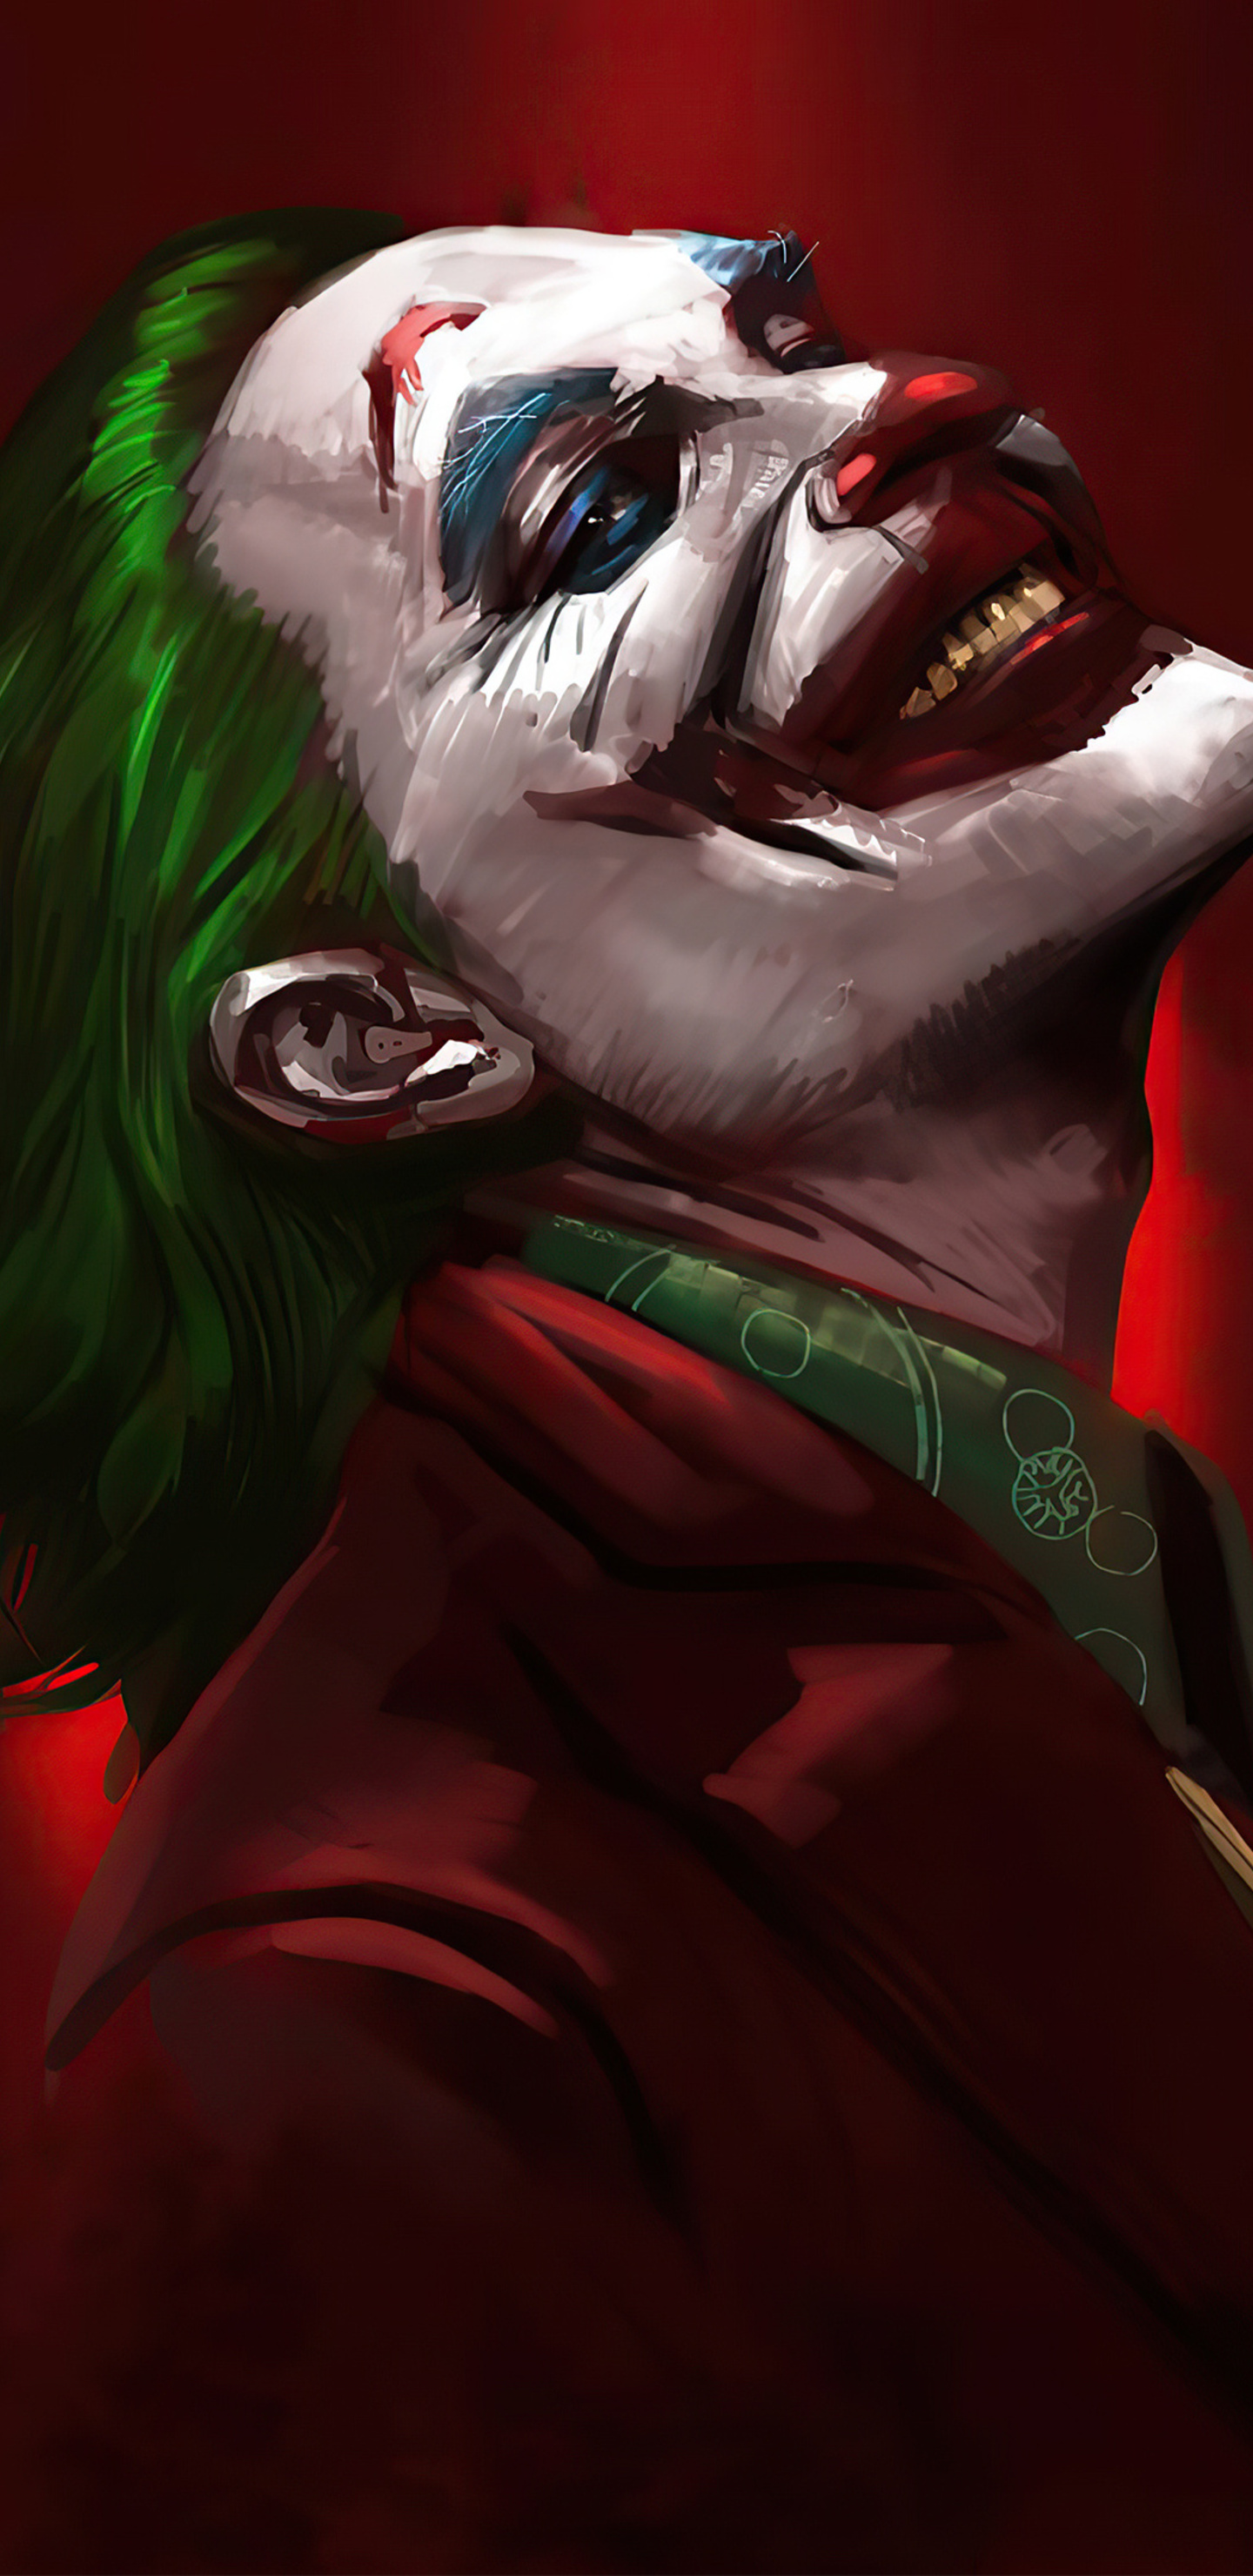 2020-joker-always-smile-4k-vr.jpg